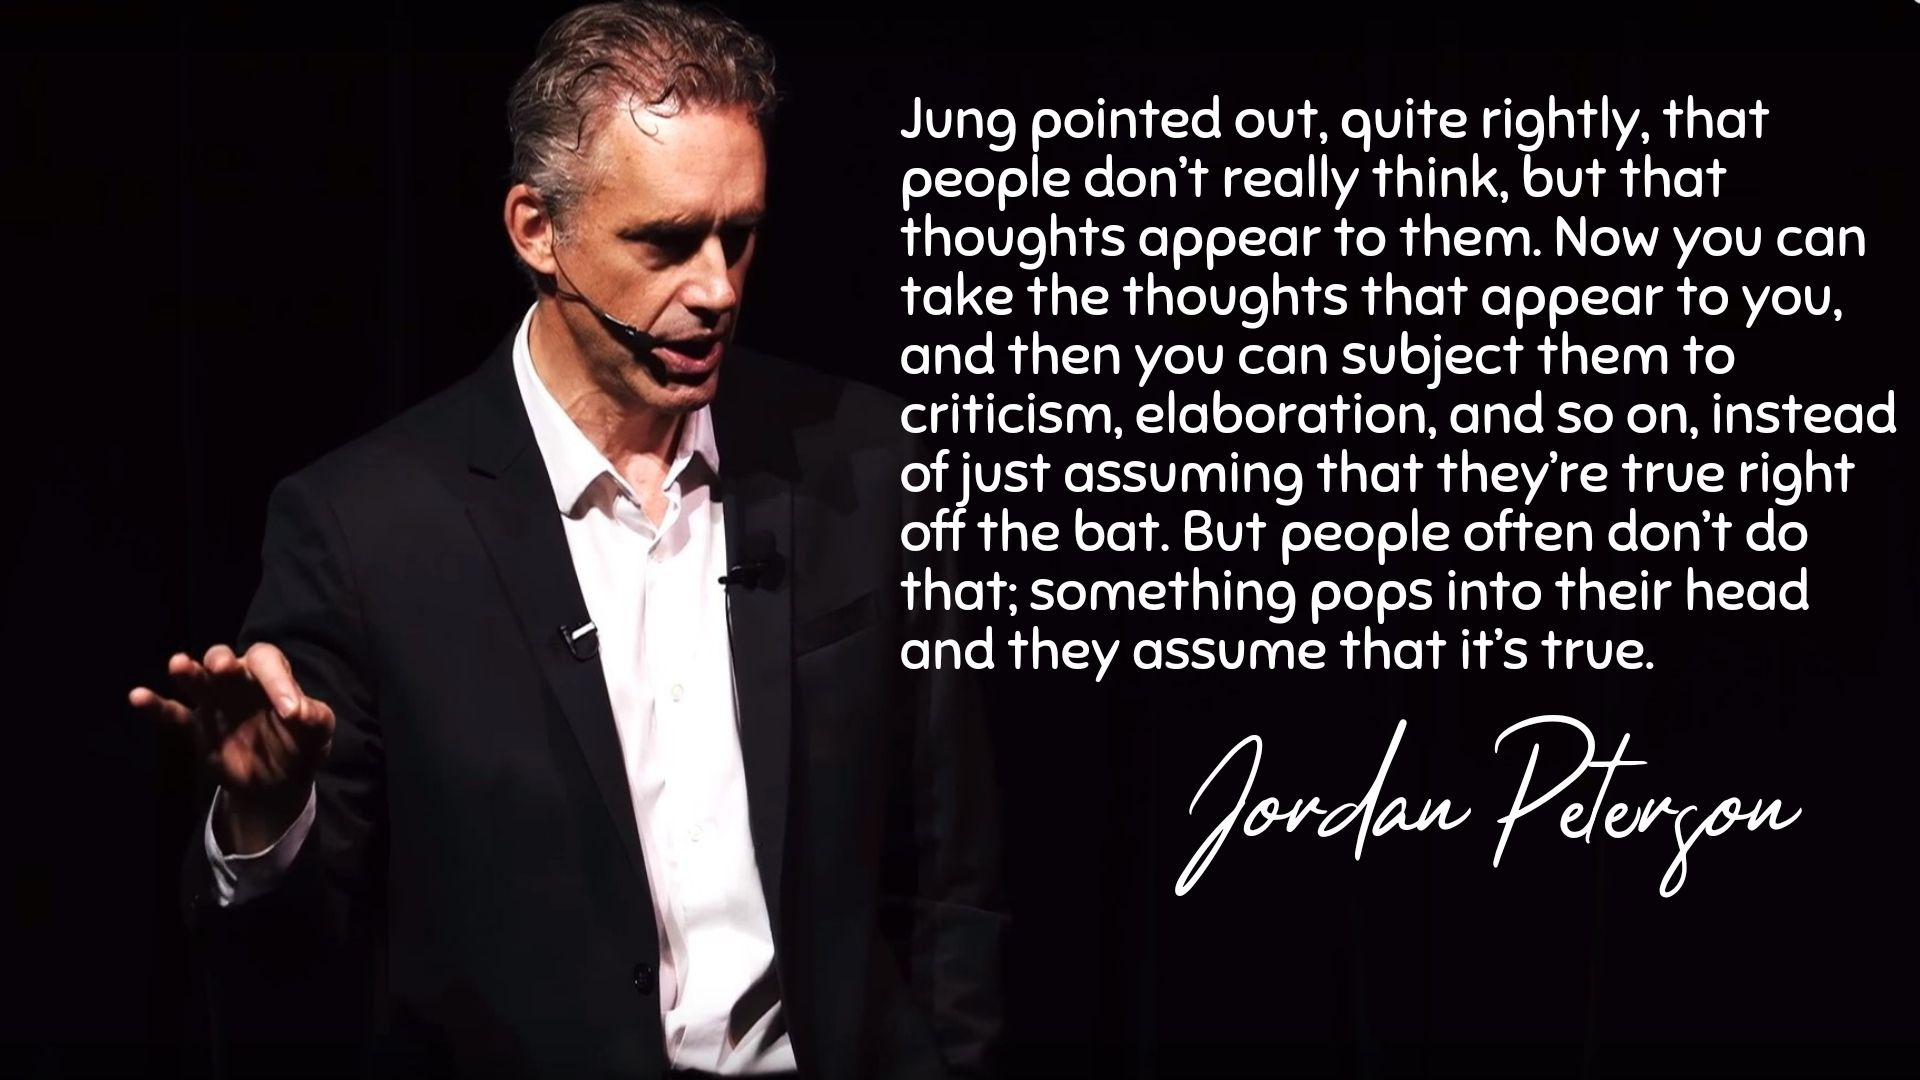 """Something pops into their head and they assume that it's true."" -Jordan Peterson[1920×1080]"